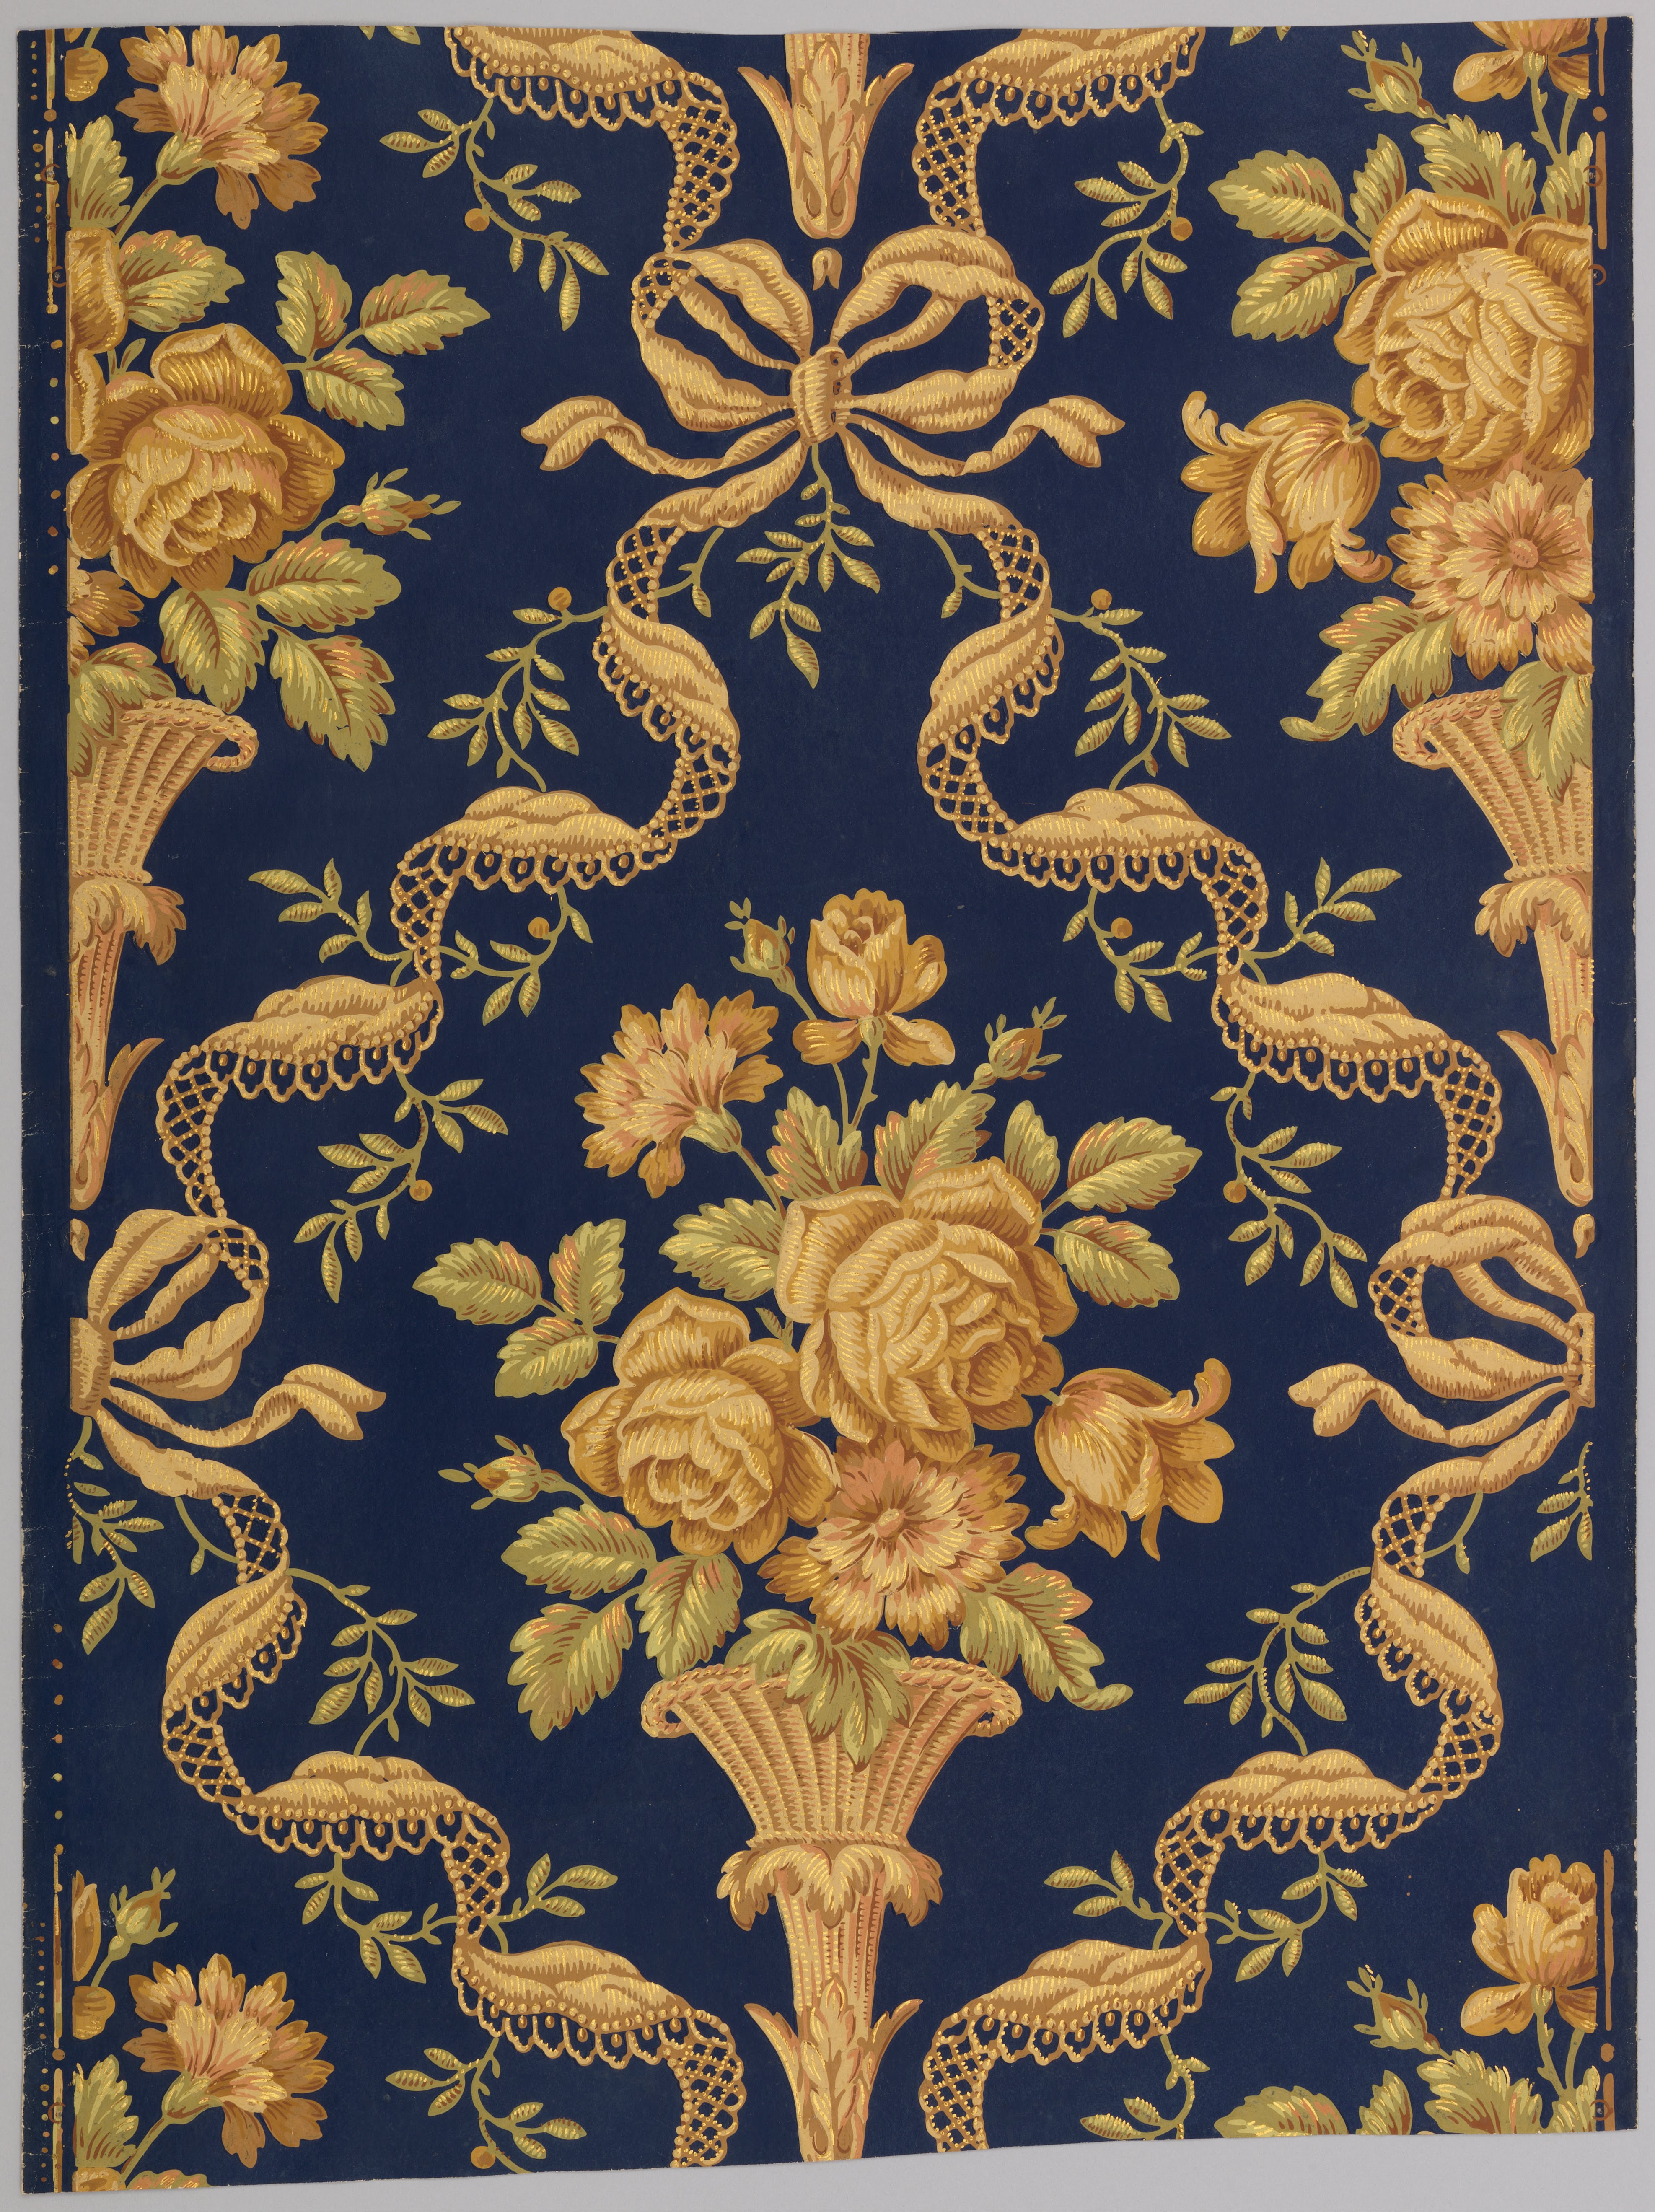 File zuber cie floral brocade google art wikimedia commons - Brocade home decor style ...